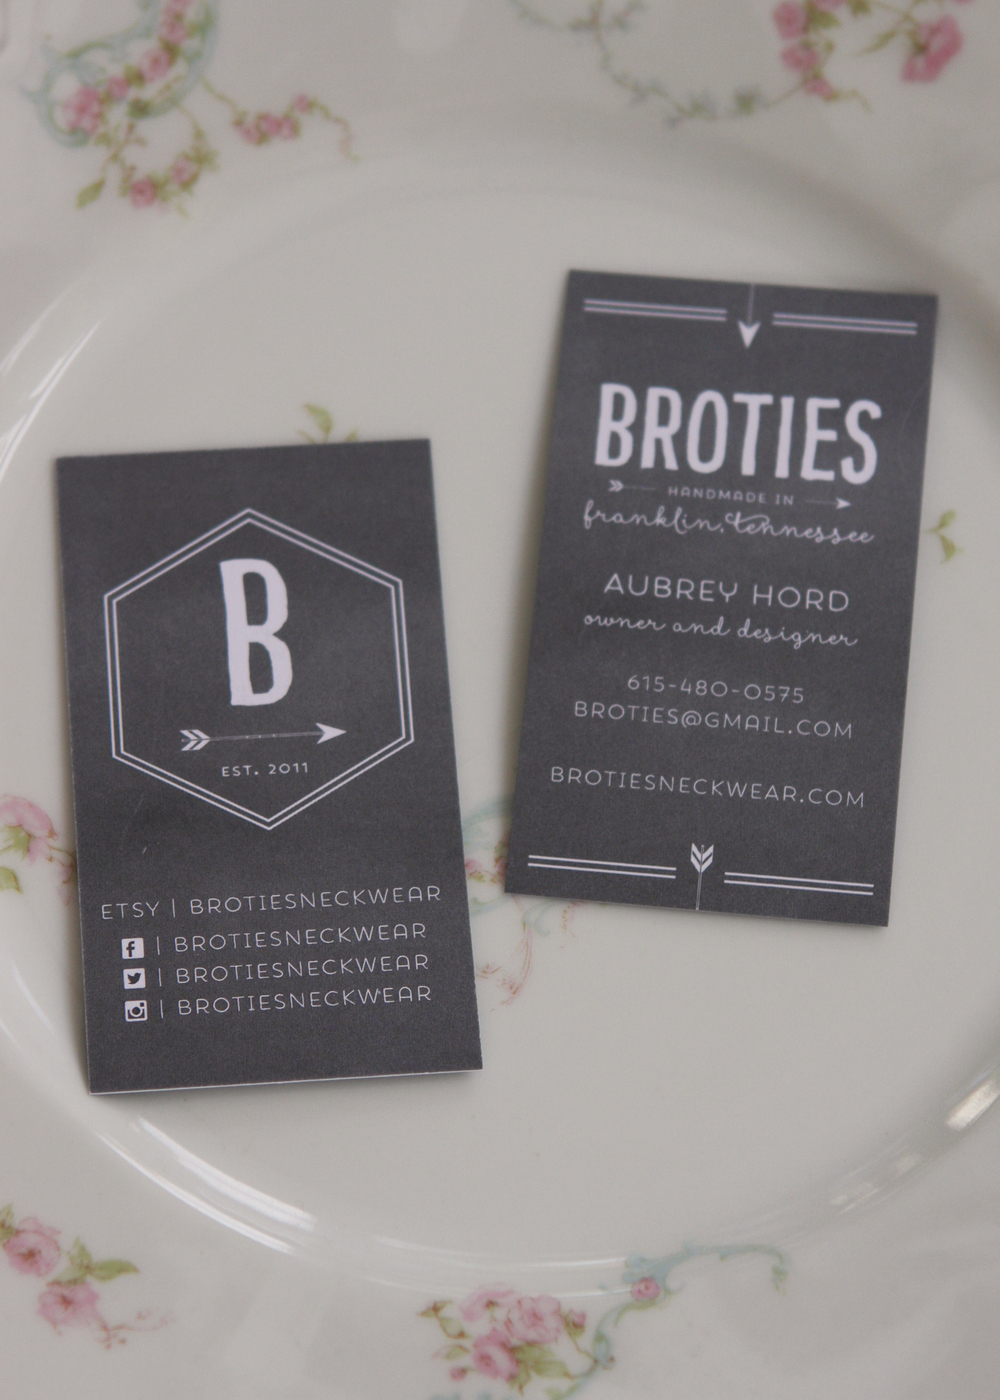 BroTies business cards.